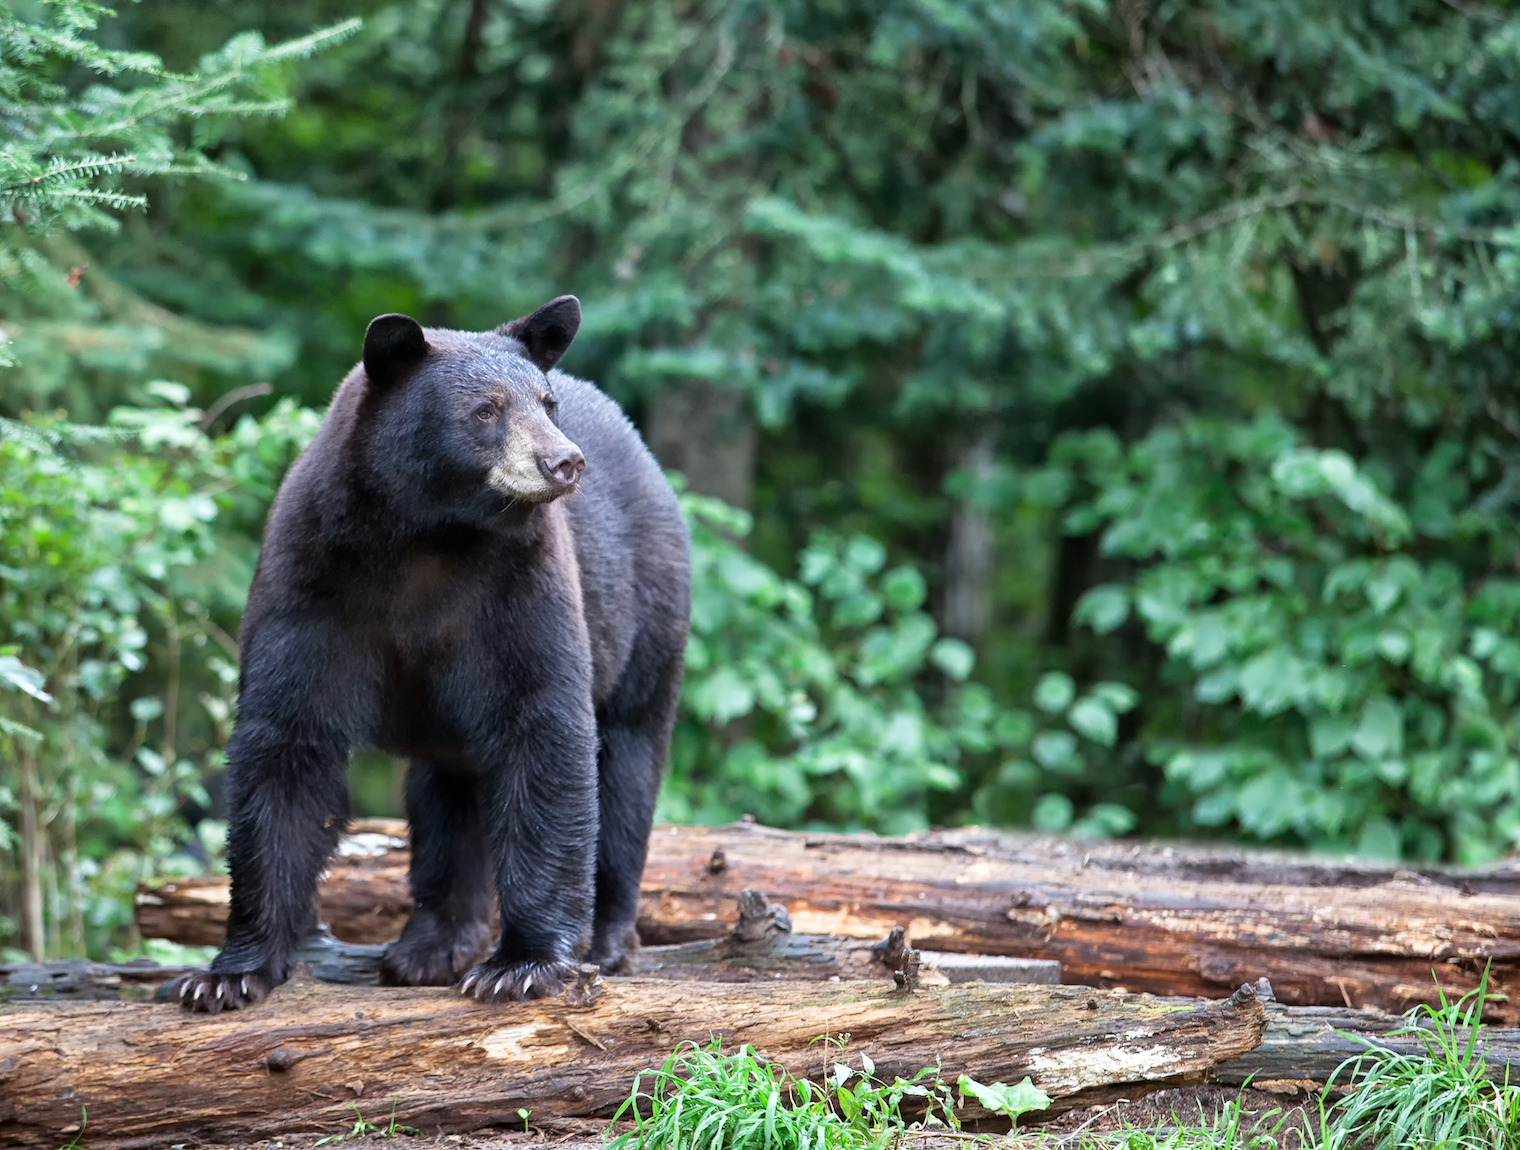 Donuts and other high-calorie, high-sugar foods are currently being used as bait for bear populations by hunters in several states.